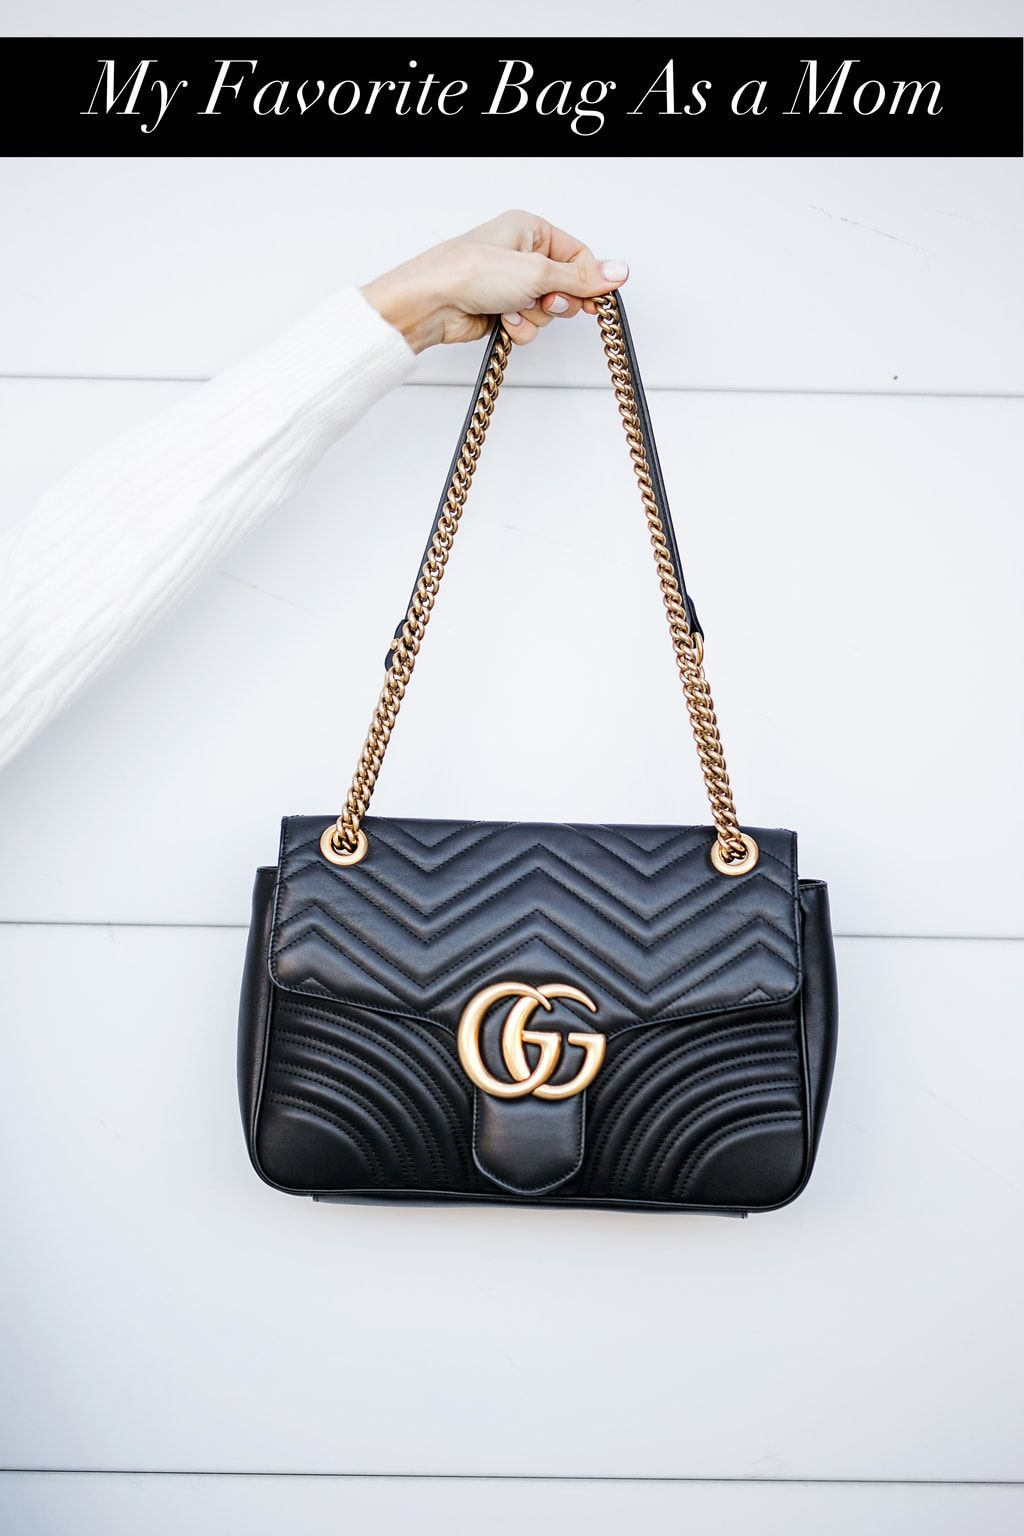 Gucci Marmont Handbag Review